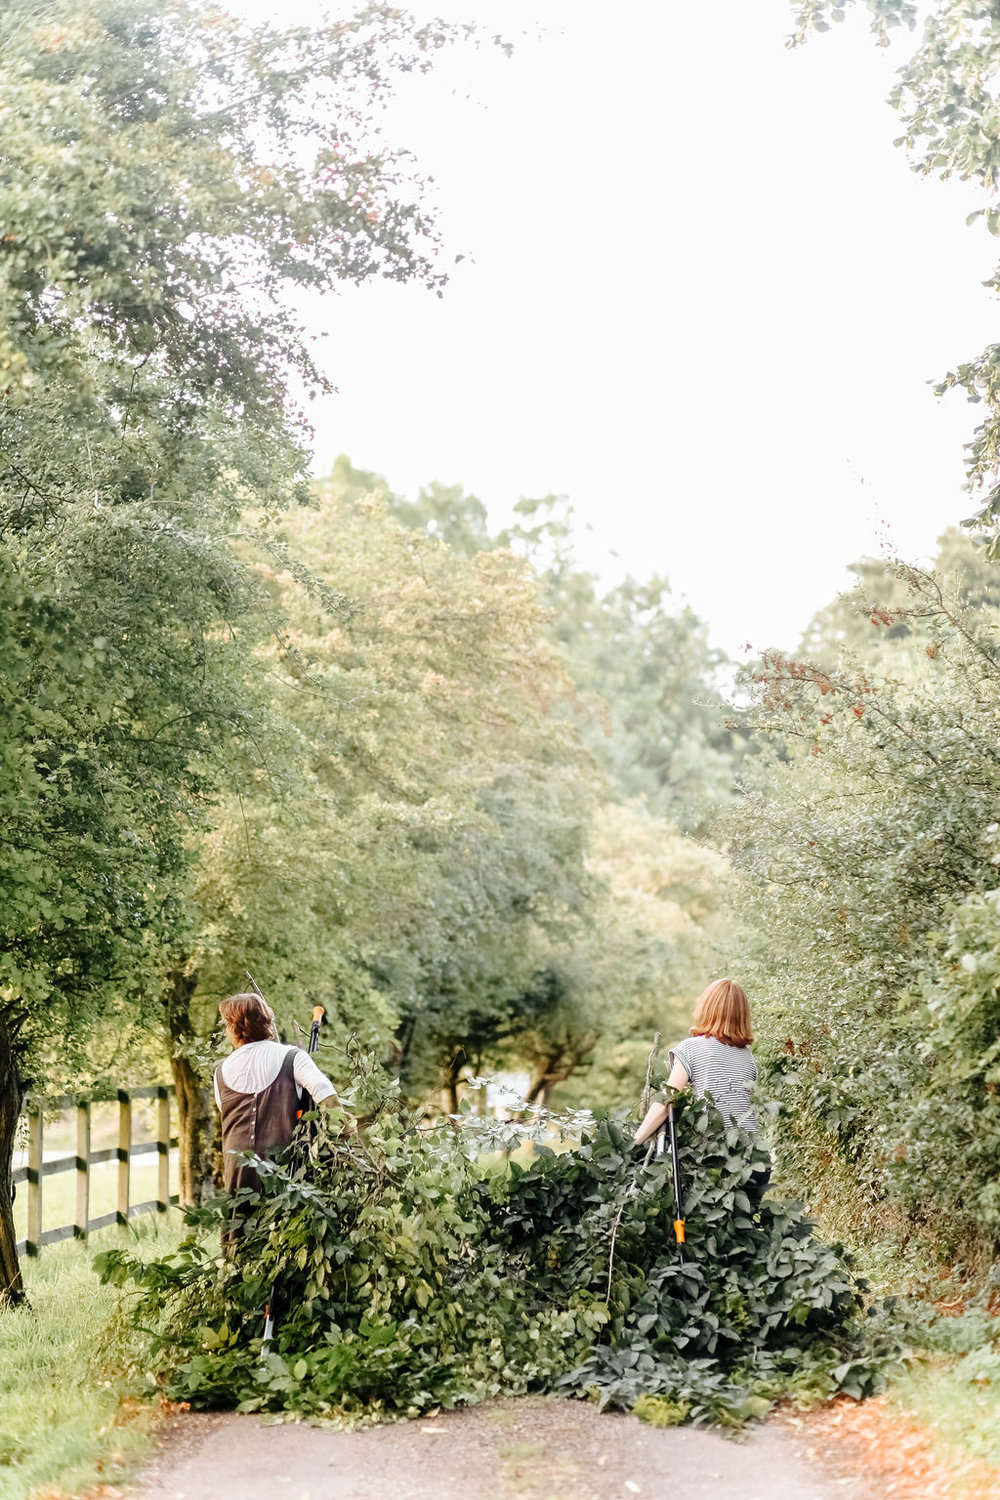 Fiona and Brigitte foraging. Image - Belle and Beau